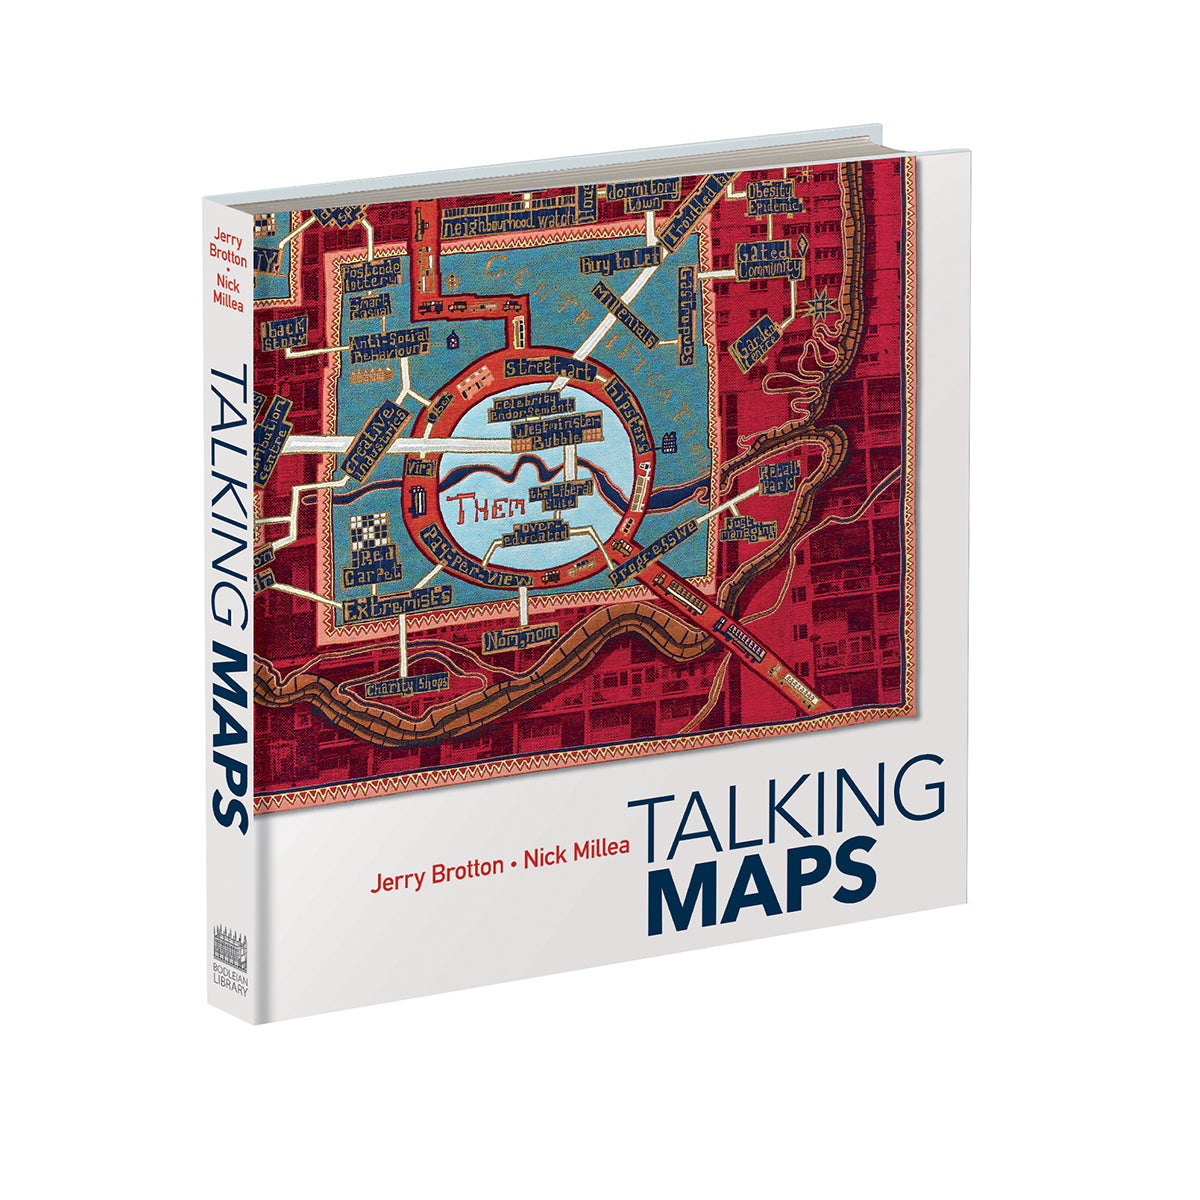 Talkiing Map in the Bodleian Shop